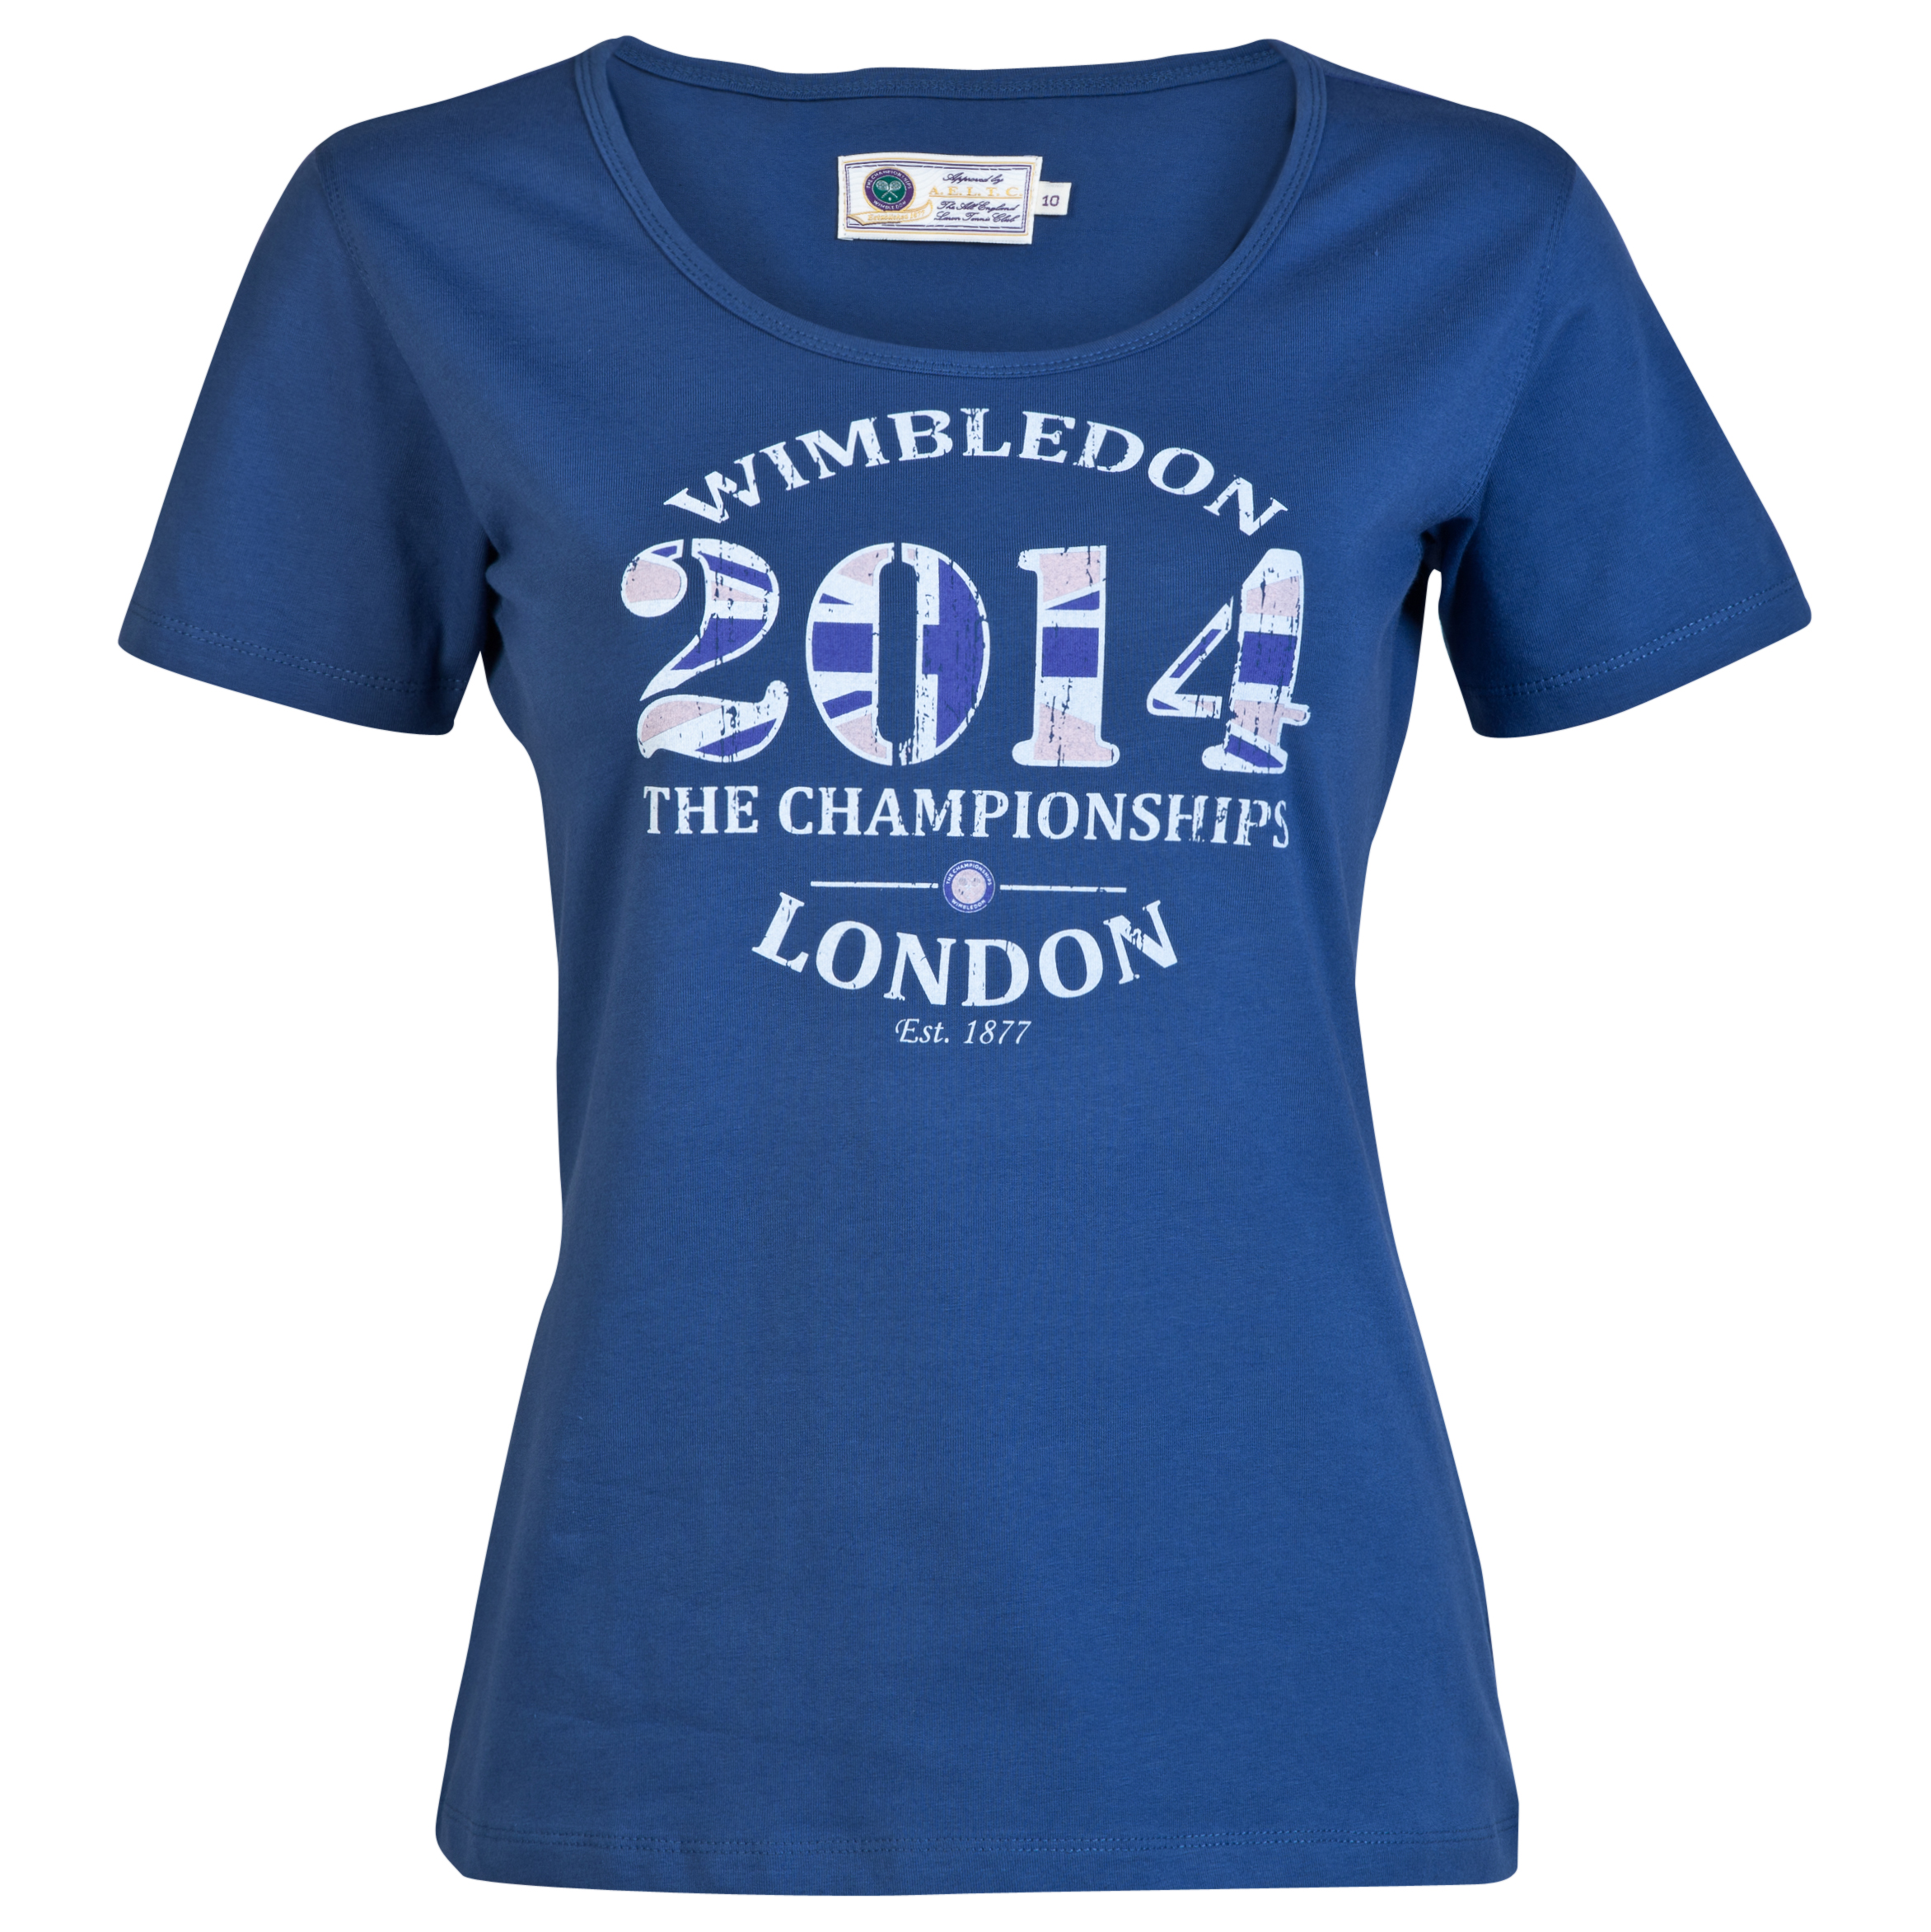 Wimbledon 2014 Print T-Shirt - Womens Blue